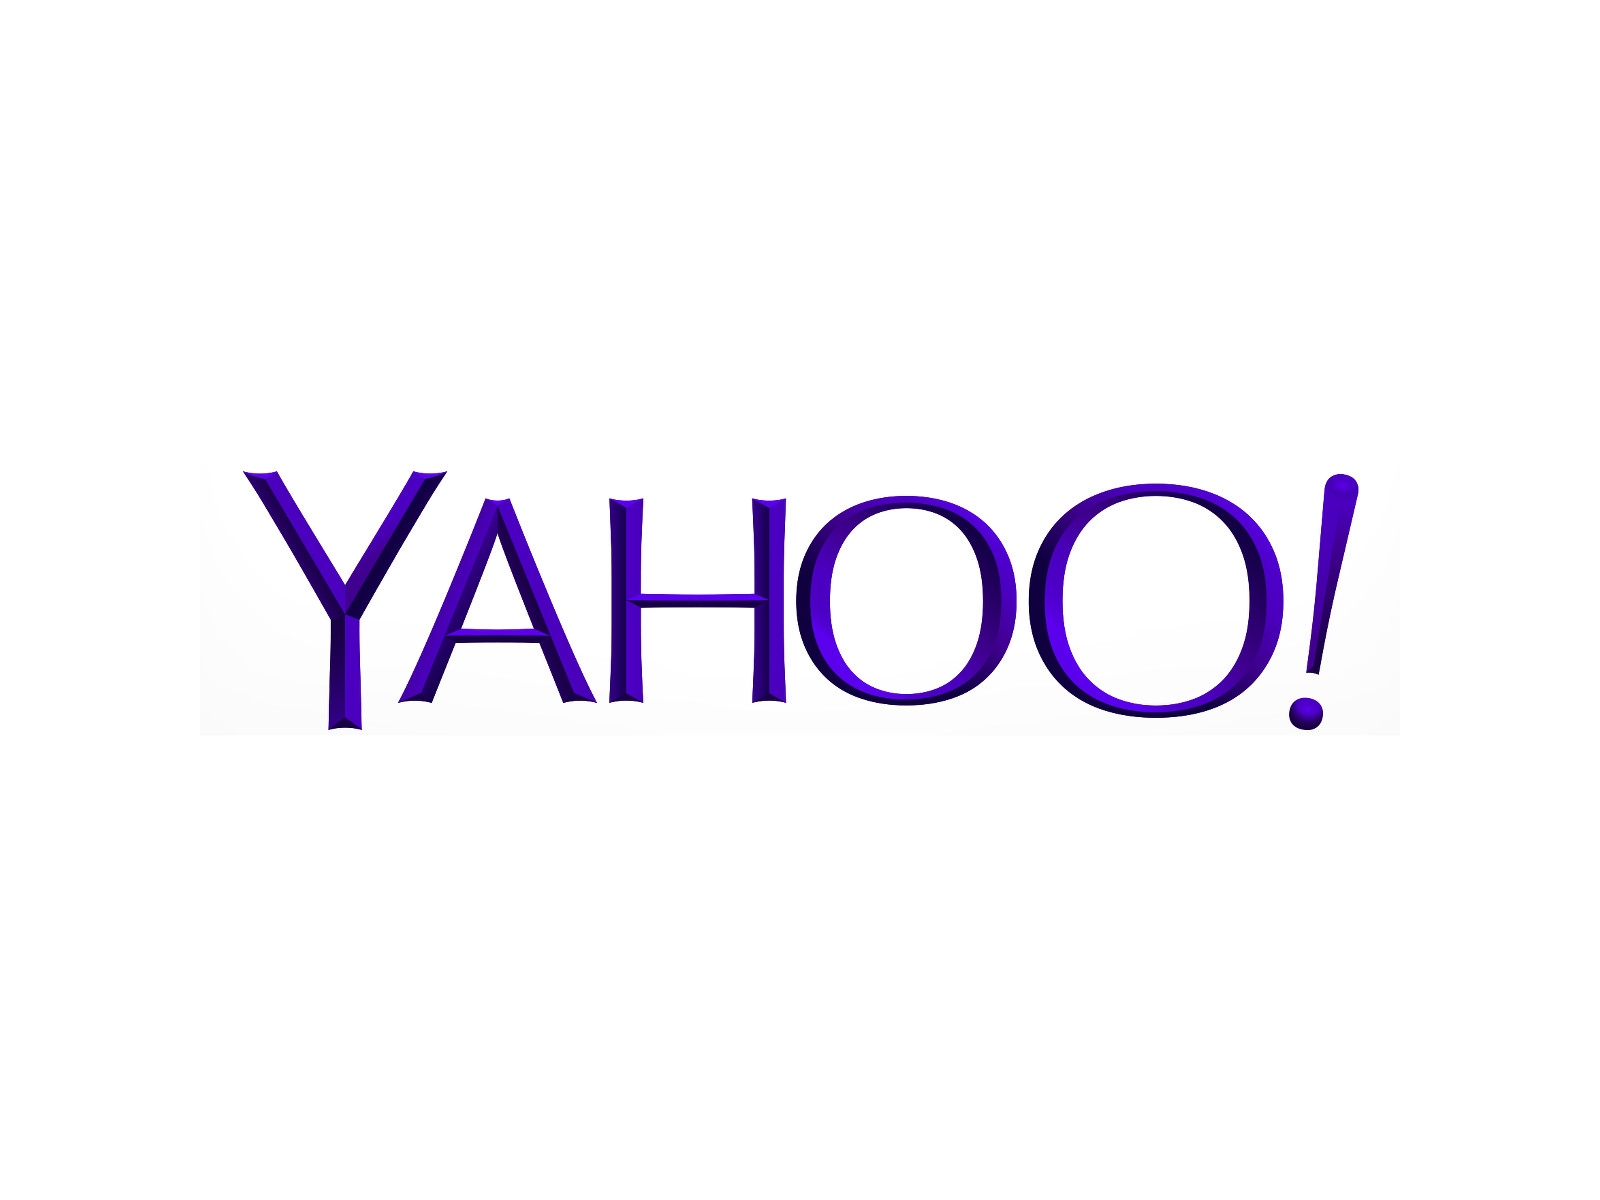 Brief-Papier in Yahoo! Mail nutzen | schieb.de